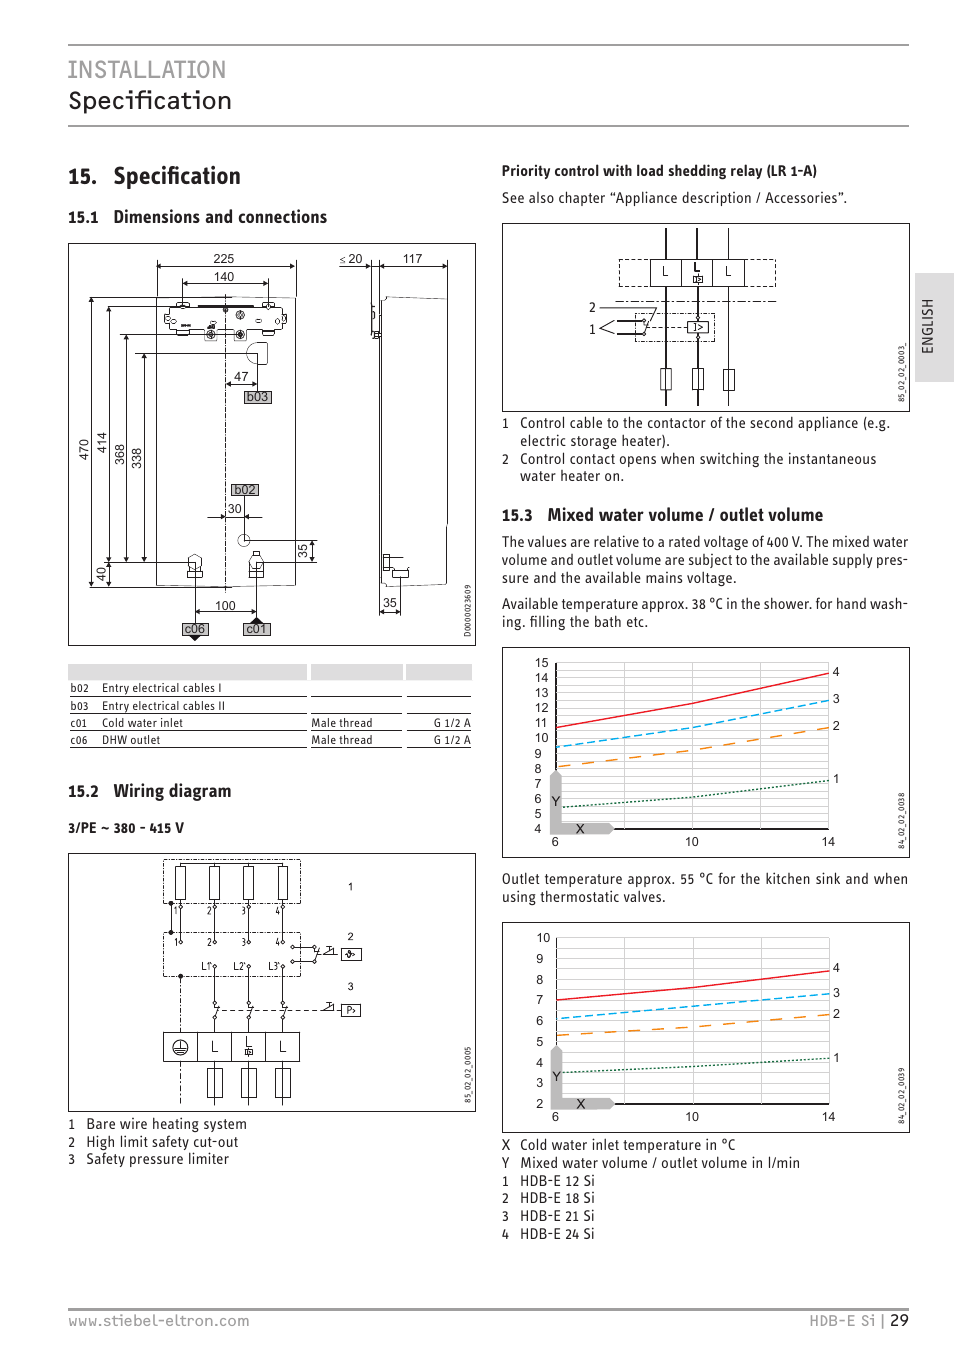 installation specification 15  specification, 1 dimensions and connections,  2 wiring diagram | stiebel eltron hdb-e si с 01 02 2013 user manual | page  29 /